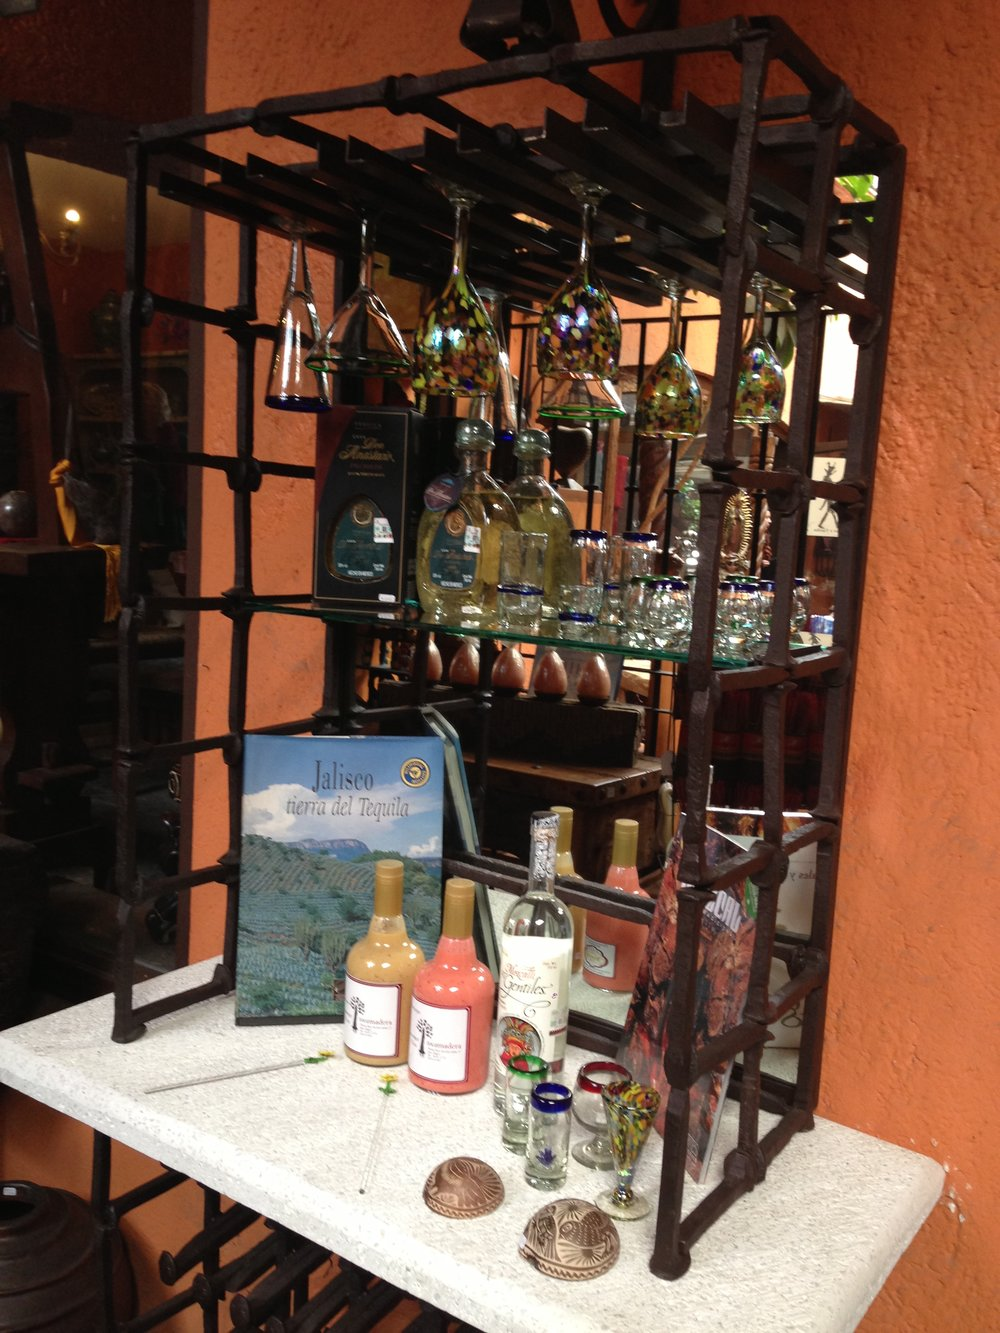 A selection of limited-edition tequilas and mezcals at the Bazzar Sabado.